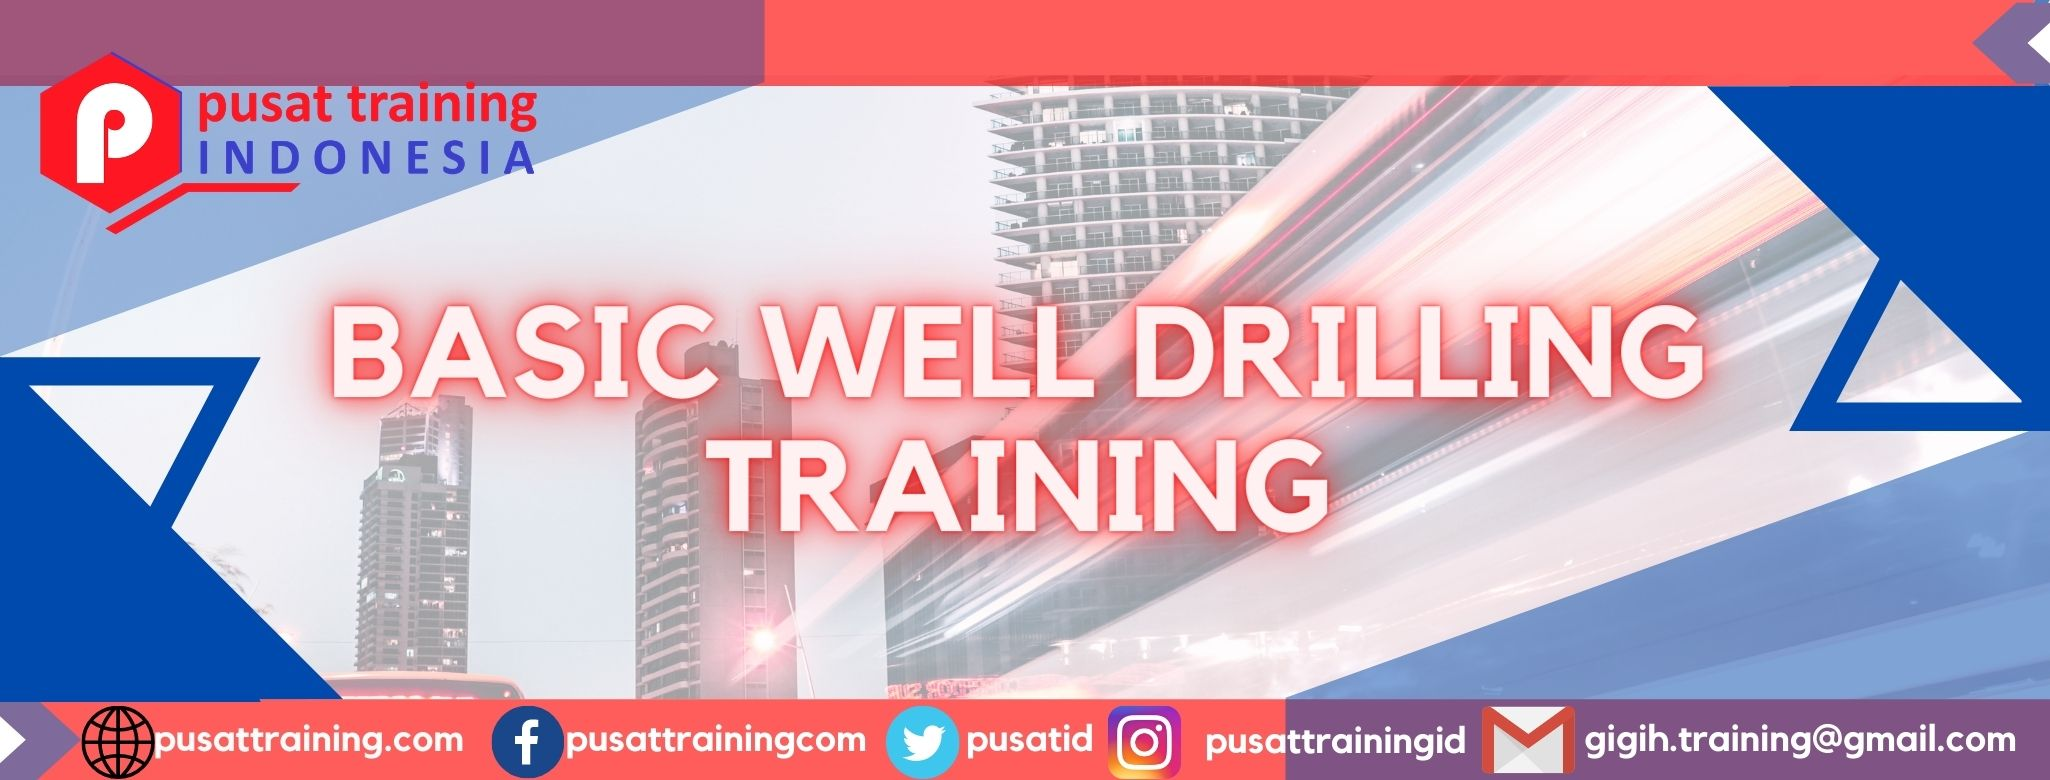 BASIC WELL DRILLING TRAINING